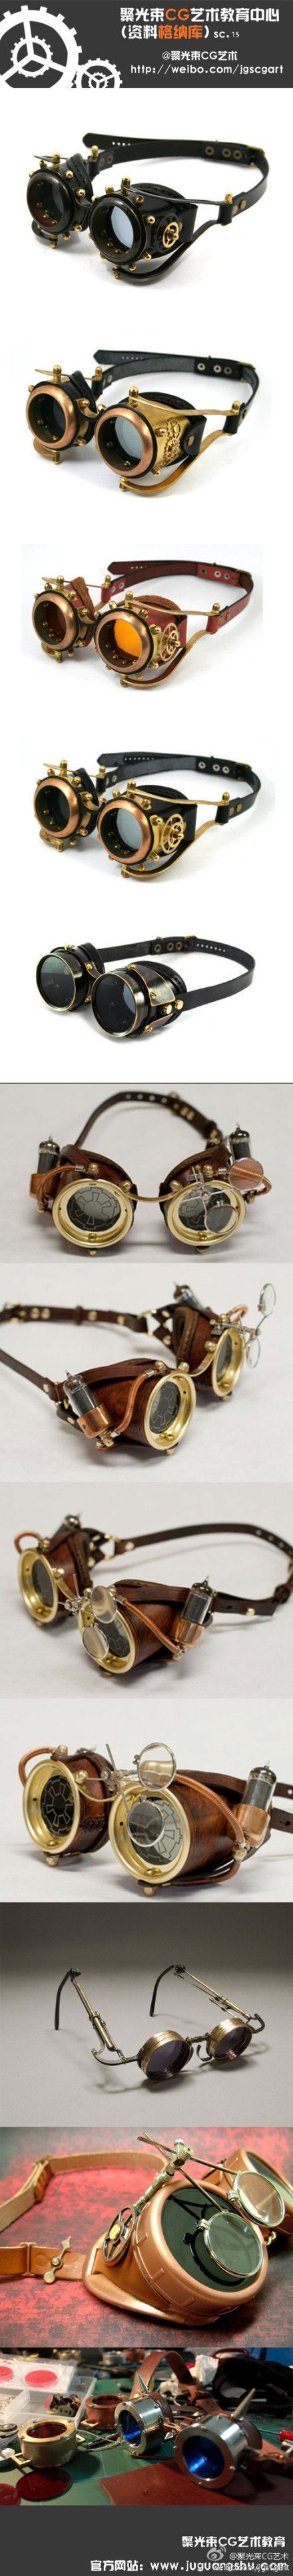 Cool #steampunk #eyewear. I'd wear these while ridding my bike #steampunkeer...